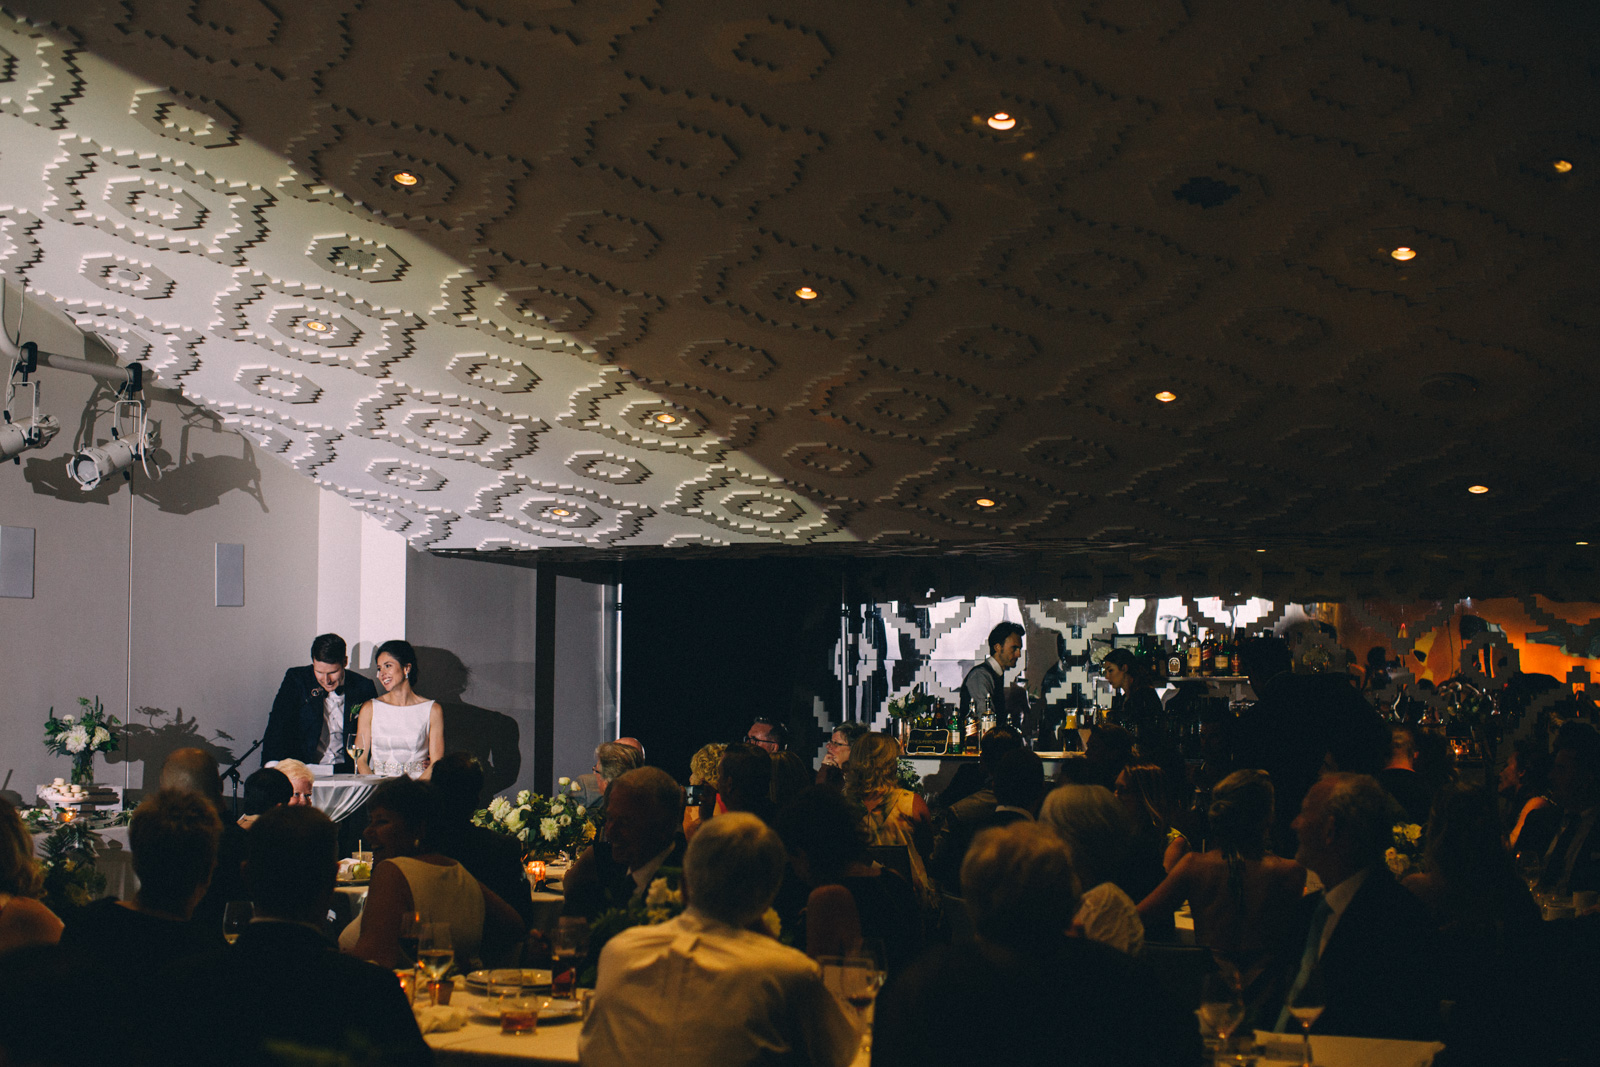 Malaparte-wedding-photography-Toronto-by-Sam-Wong-of-Visual-Cravings_71